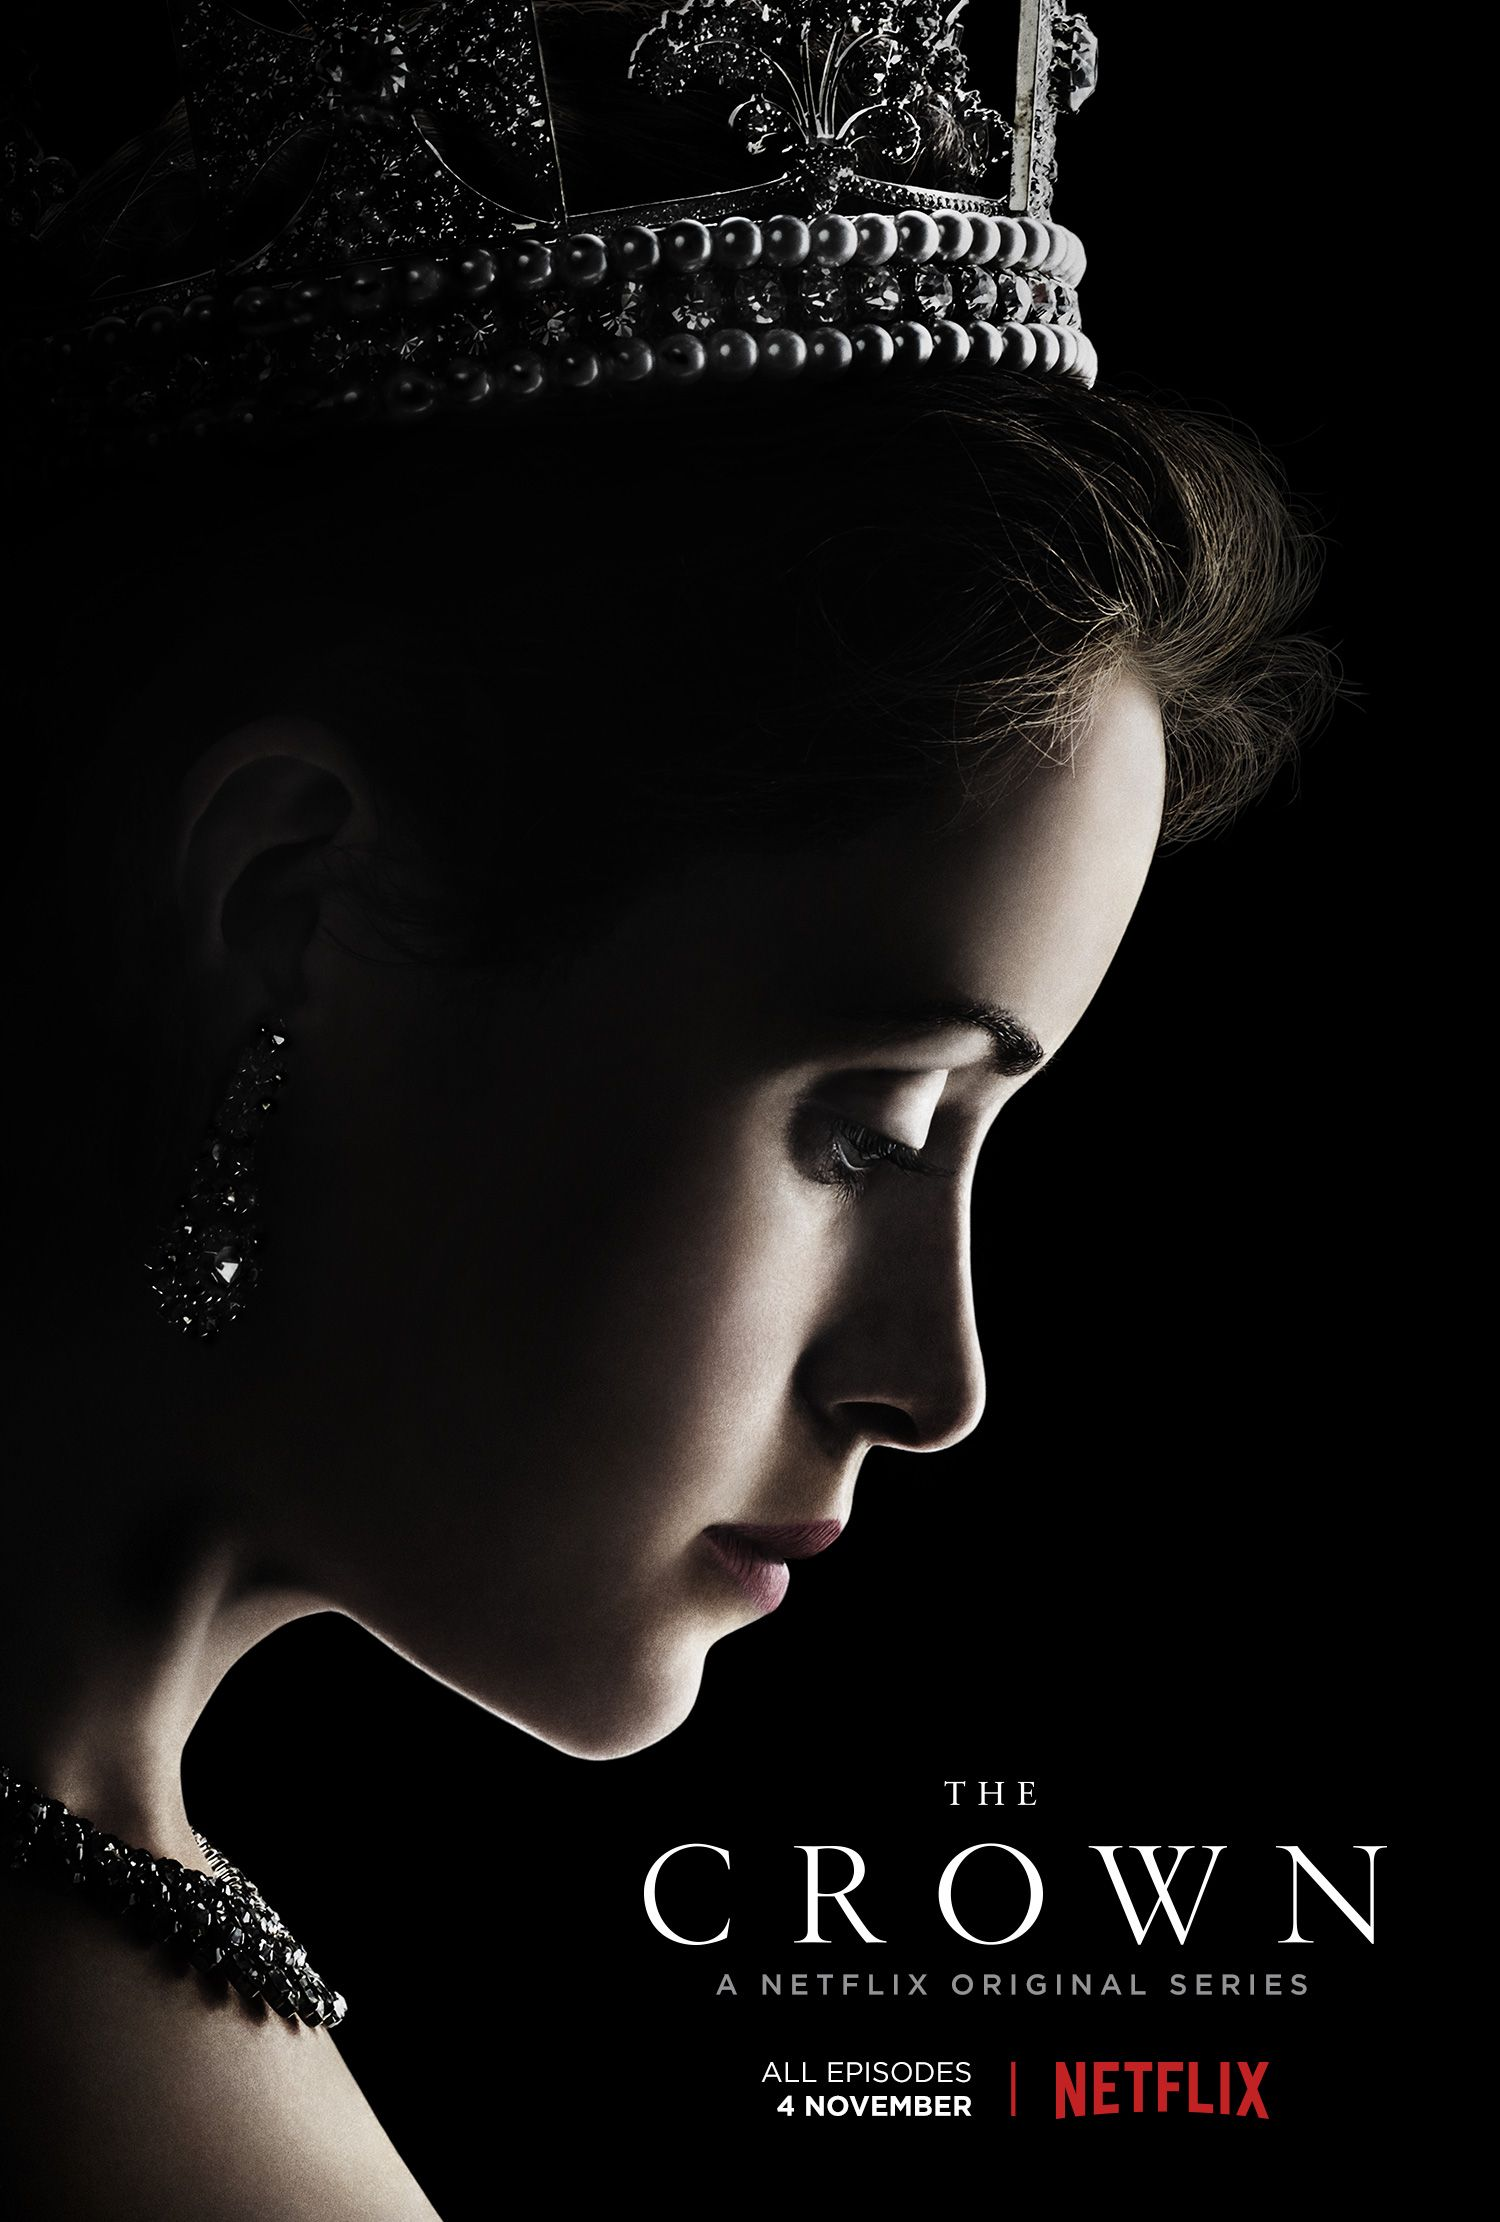 Claire Foy and Matt Smith face the challenges of royal life in new